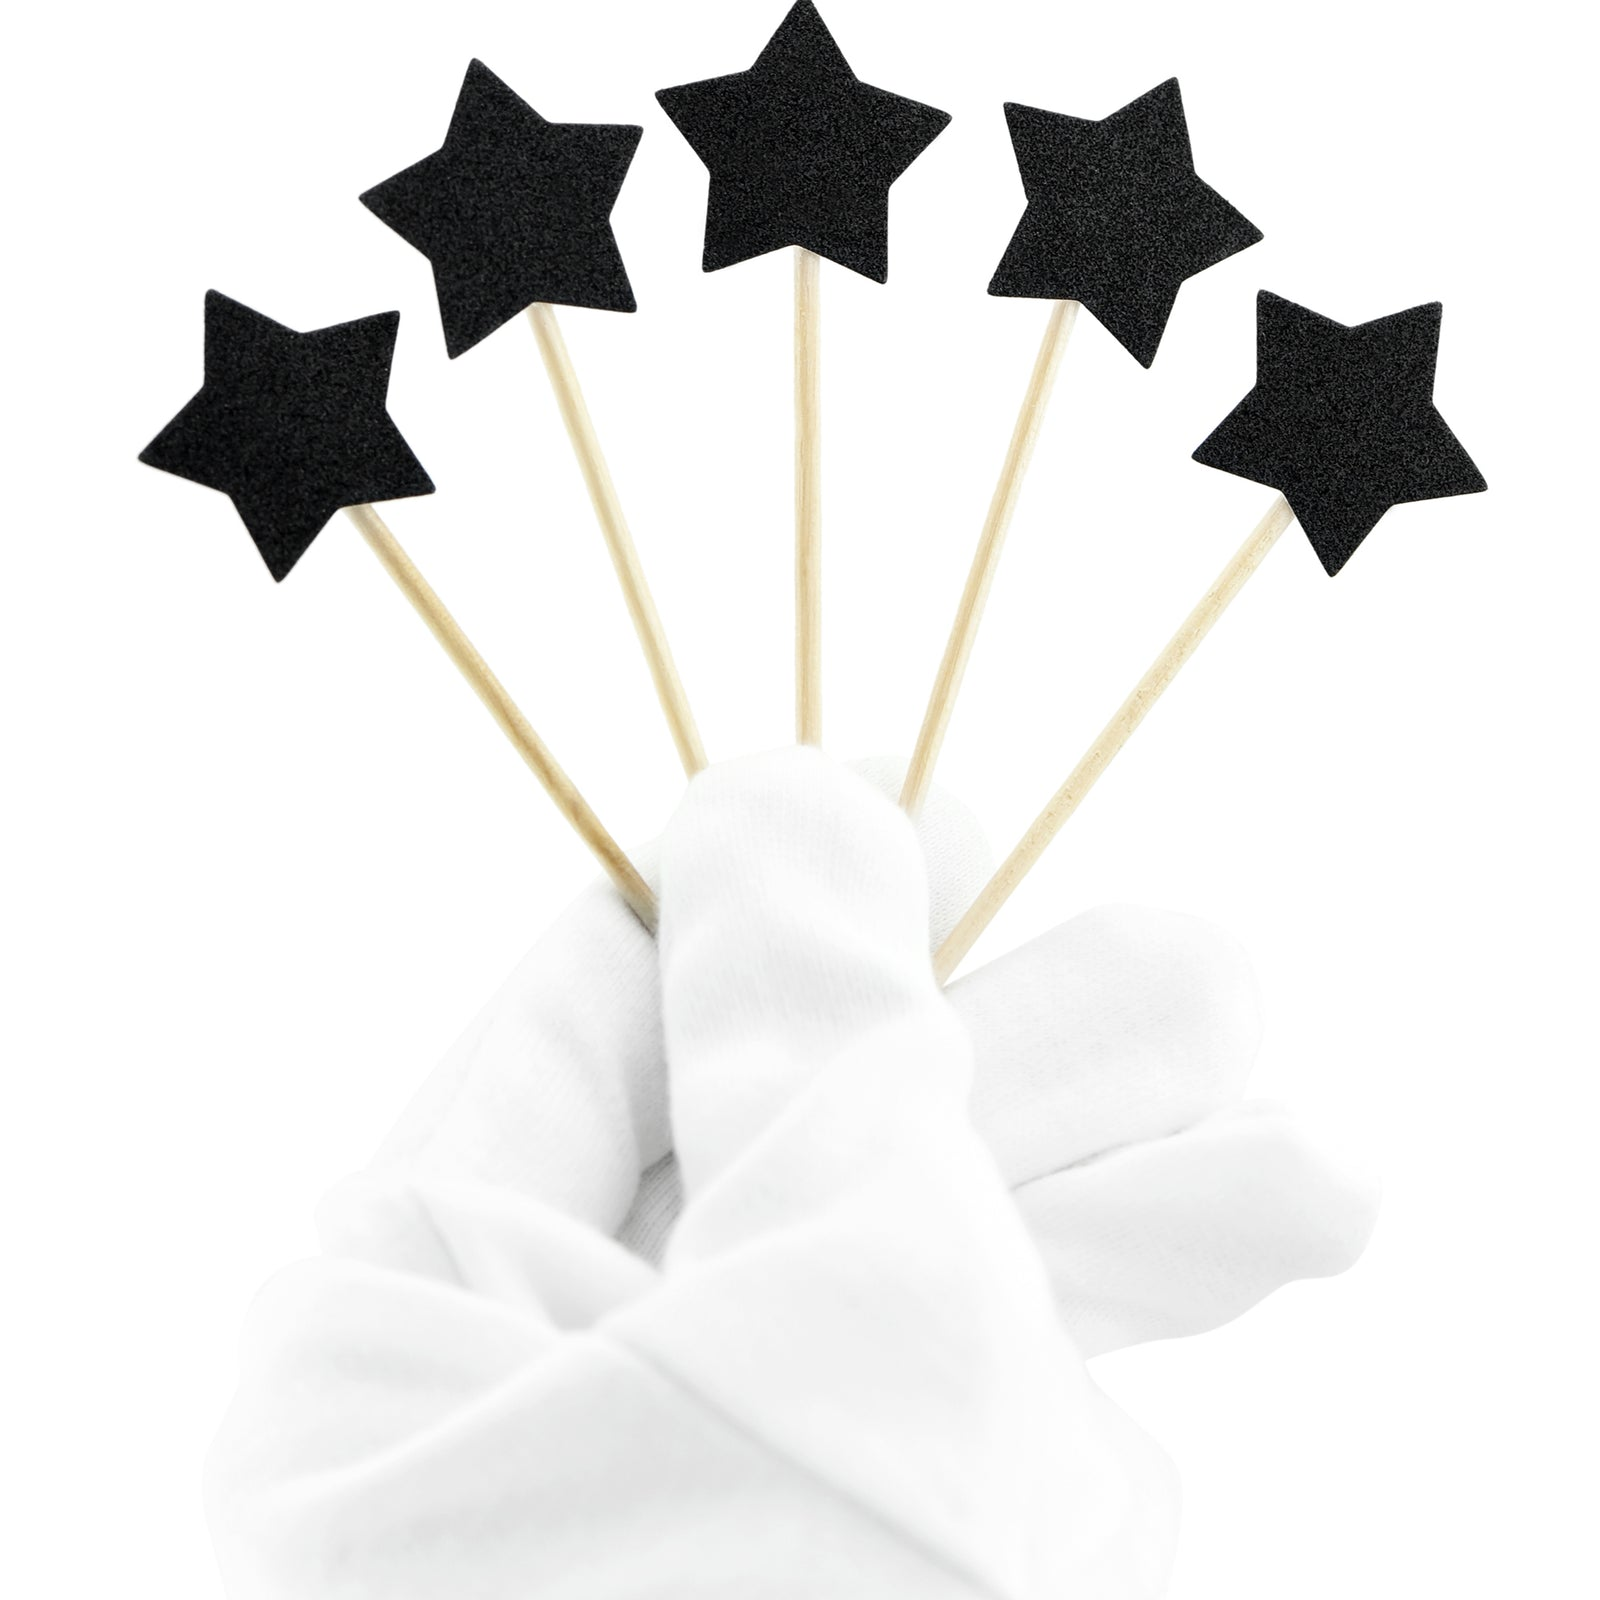 Black Star Cake Toppers 50 Pieces